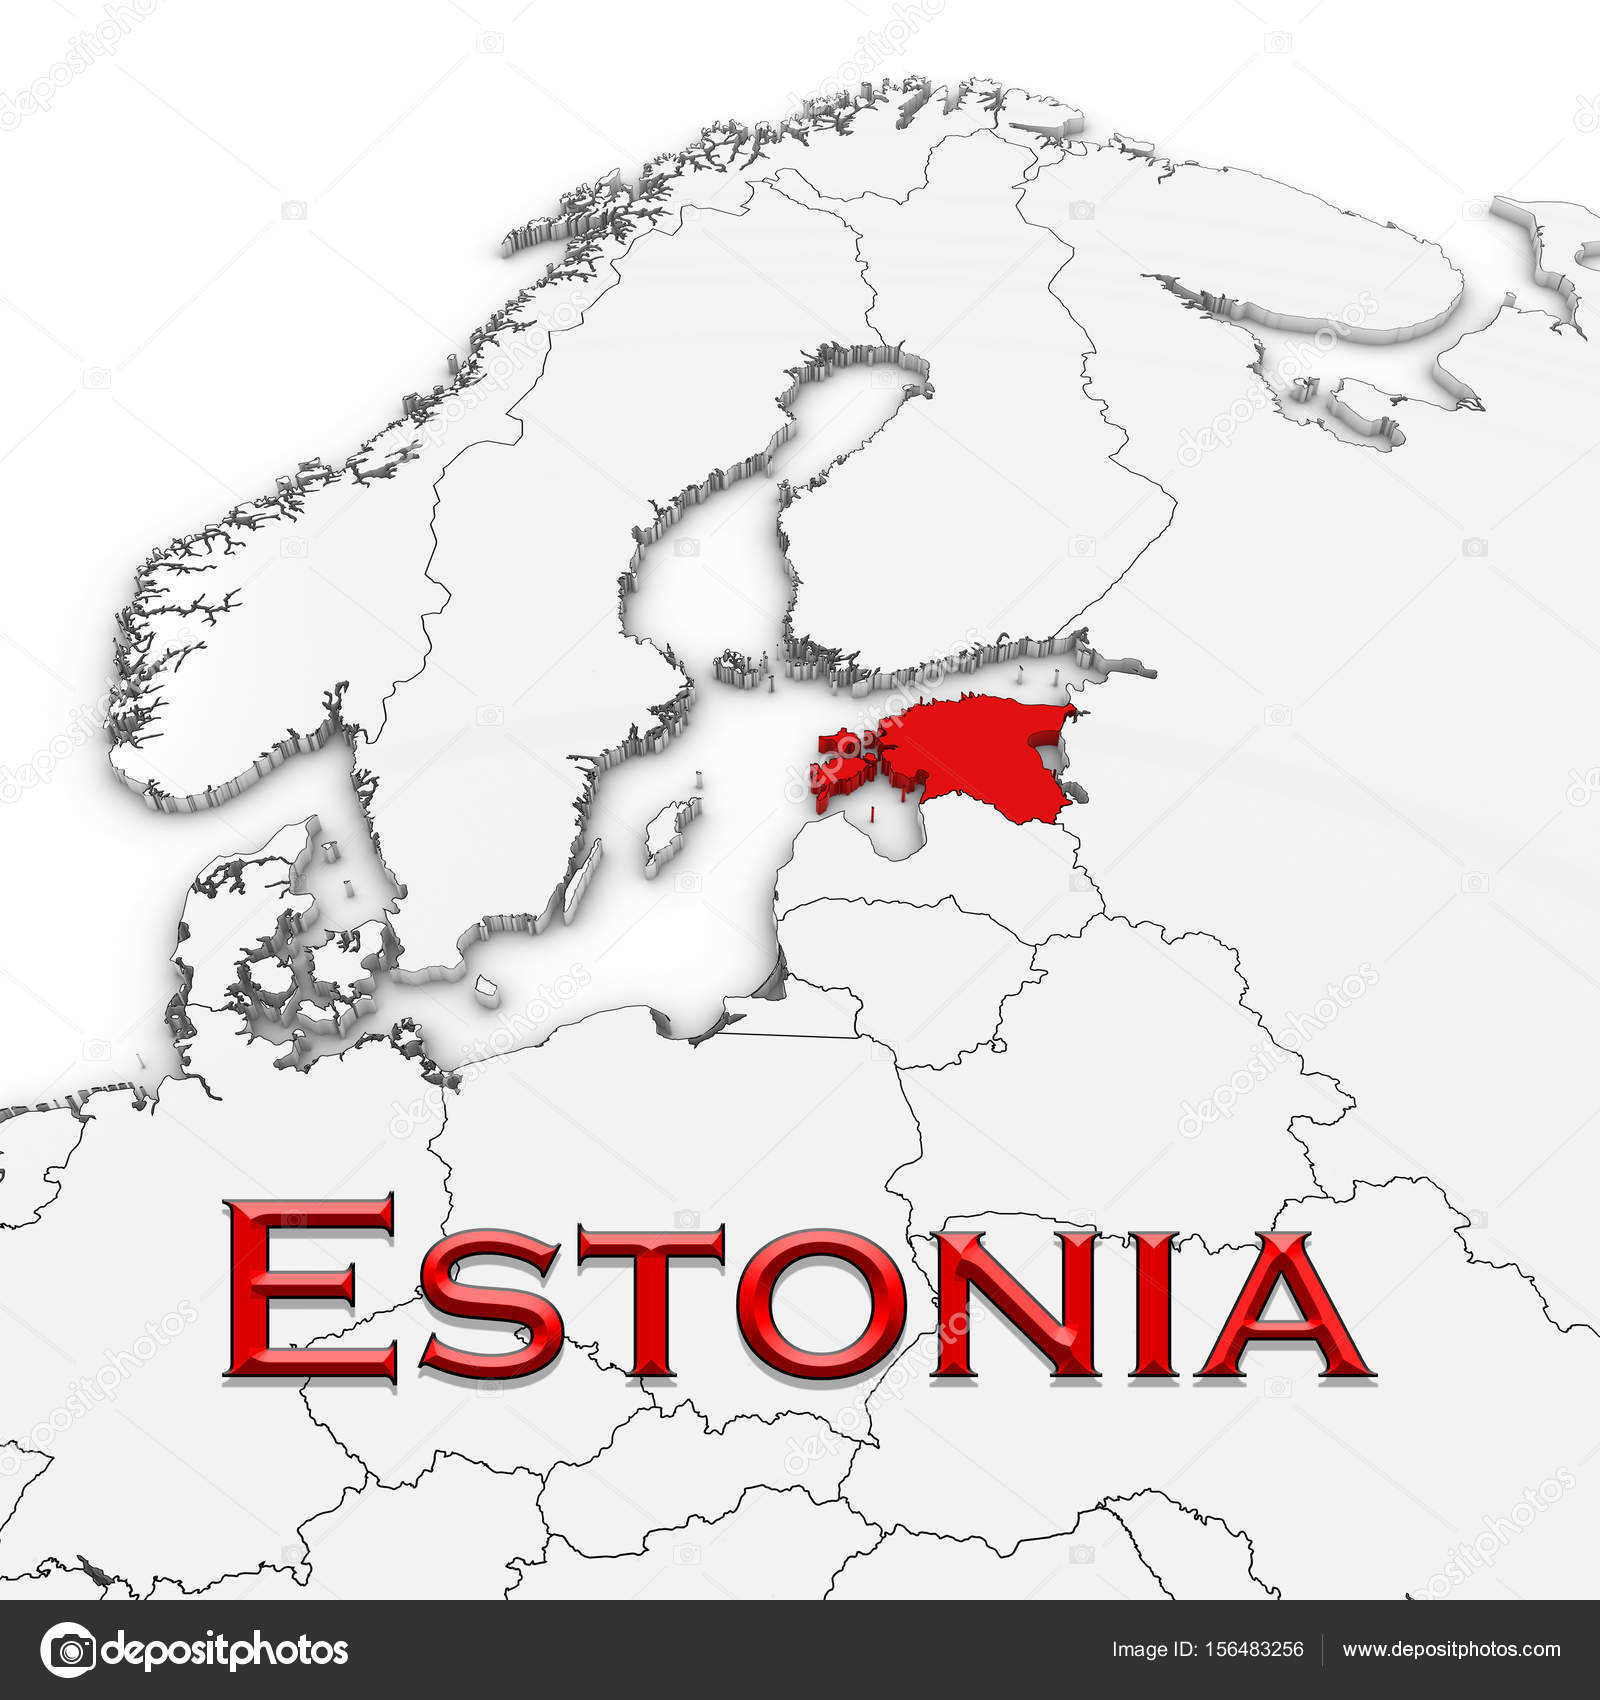 3d map of estonia with country name highlighted red on white background 3d illustration photo by fredex